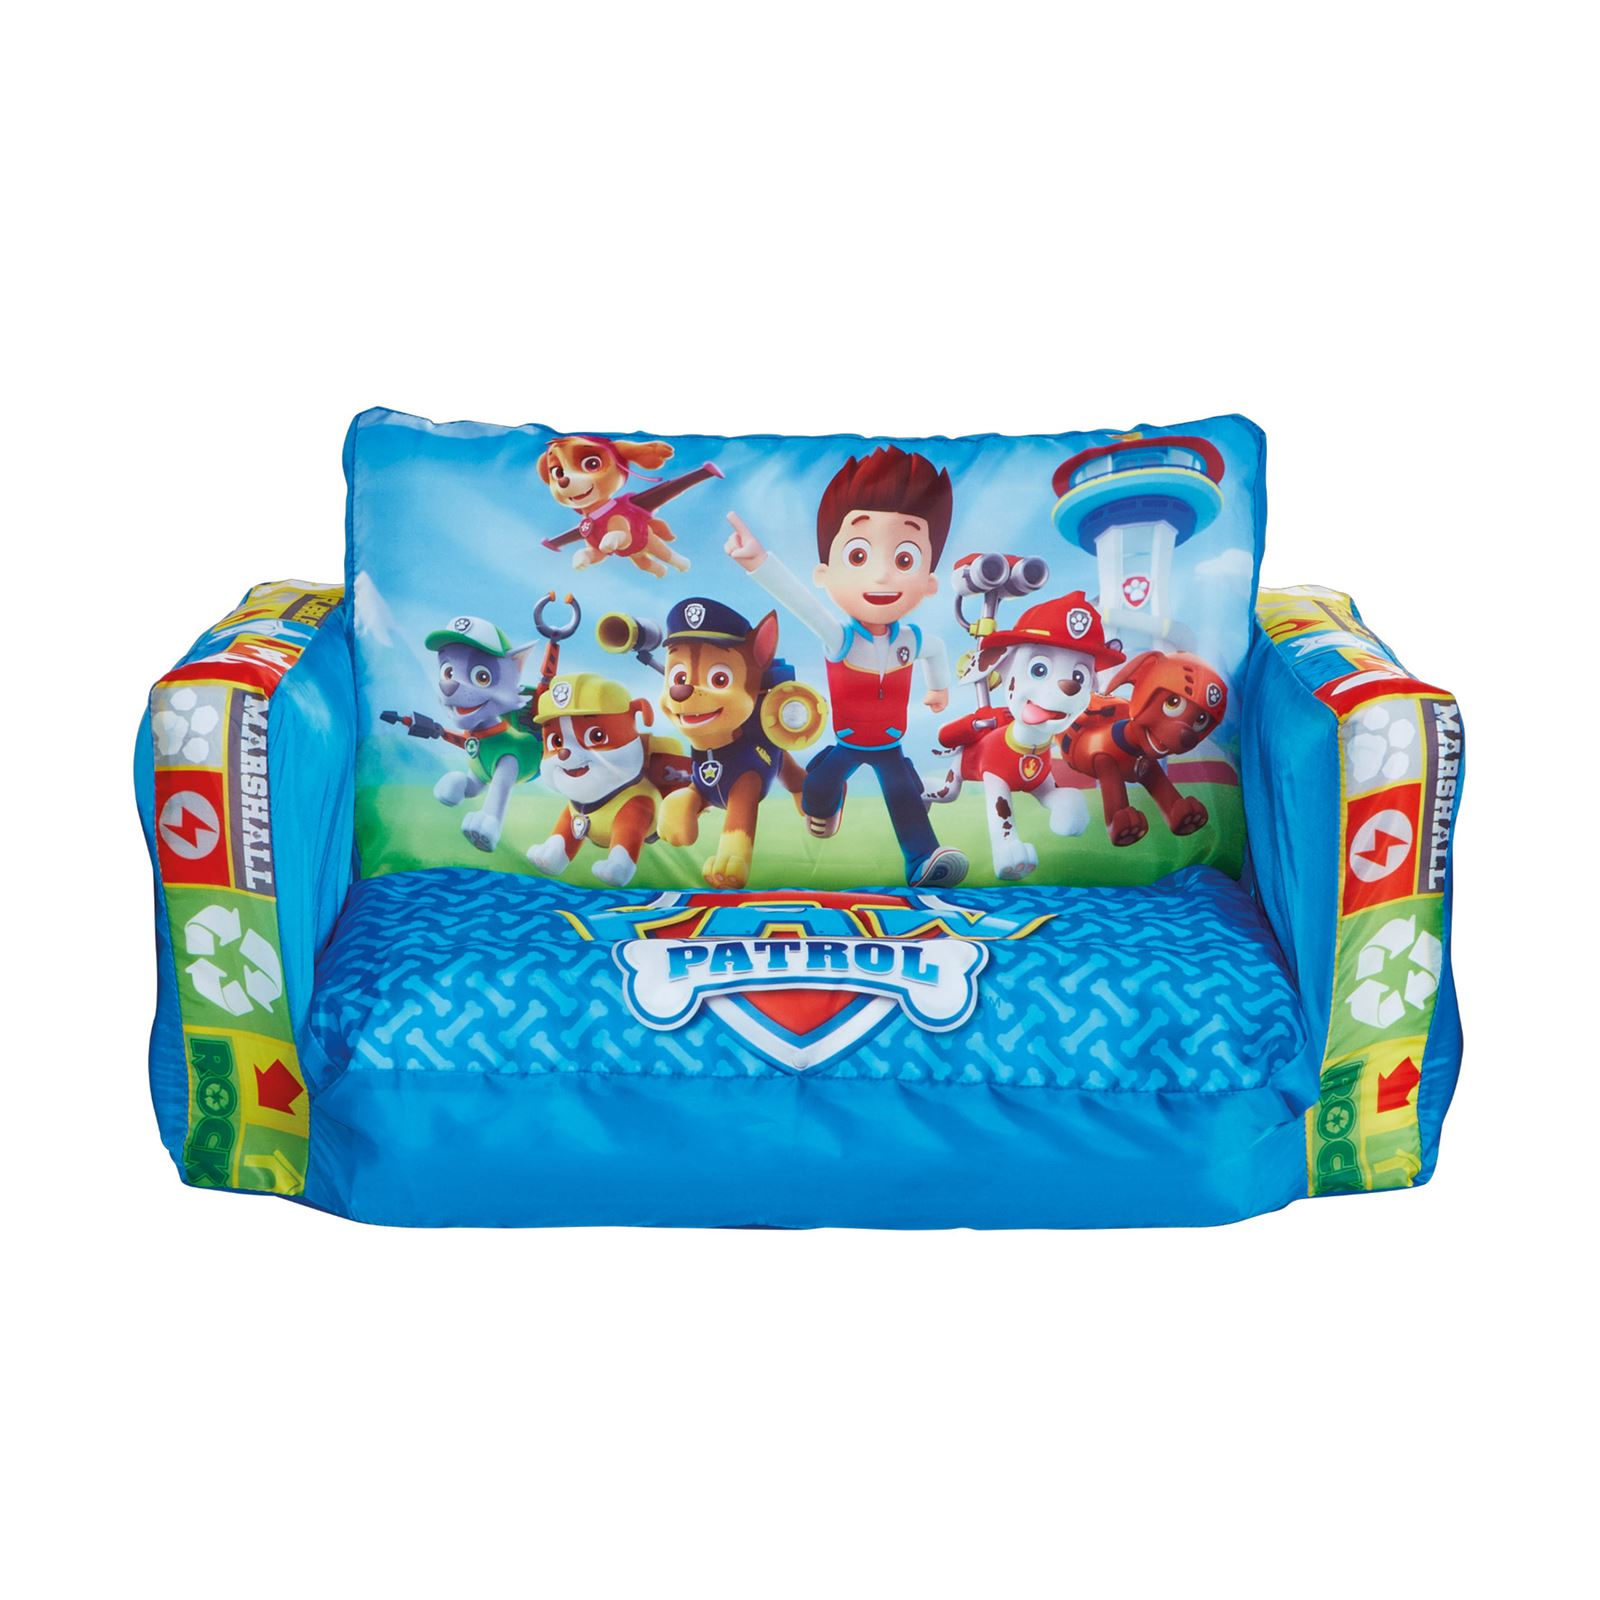 Paw patrol flip out sofa kids blue lounger seat extends for Fauteuil divan